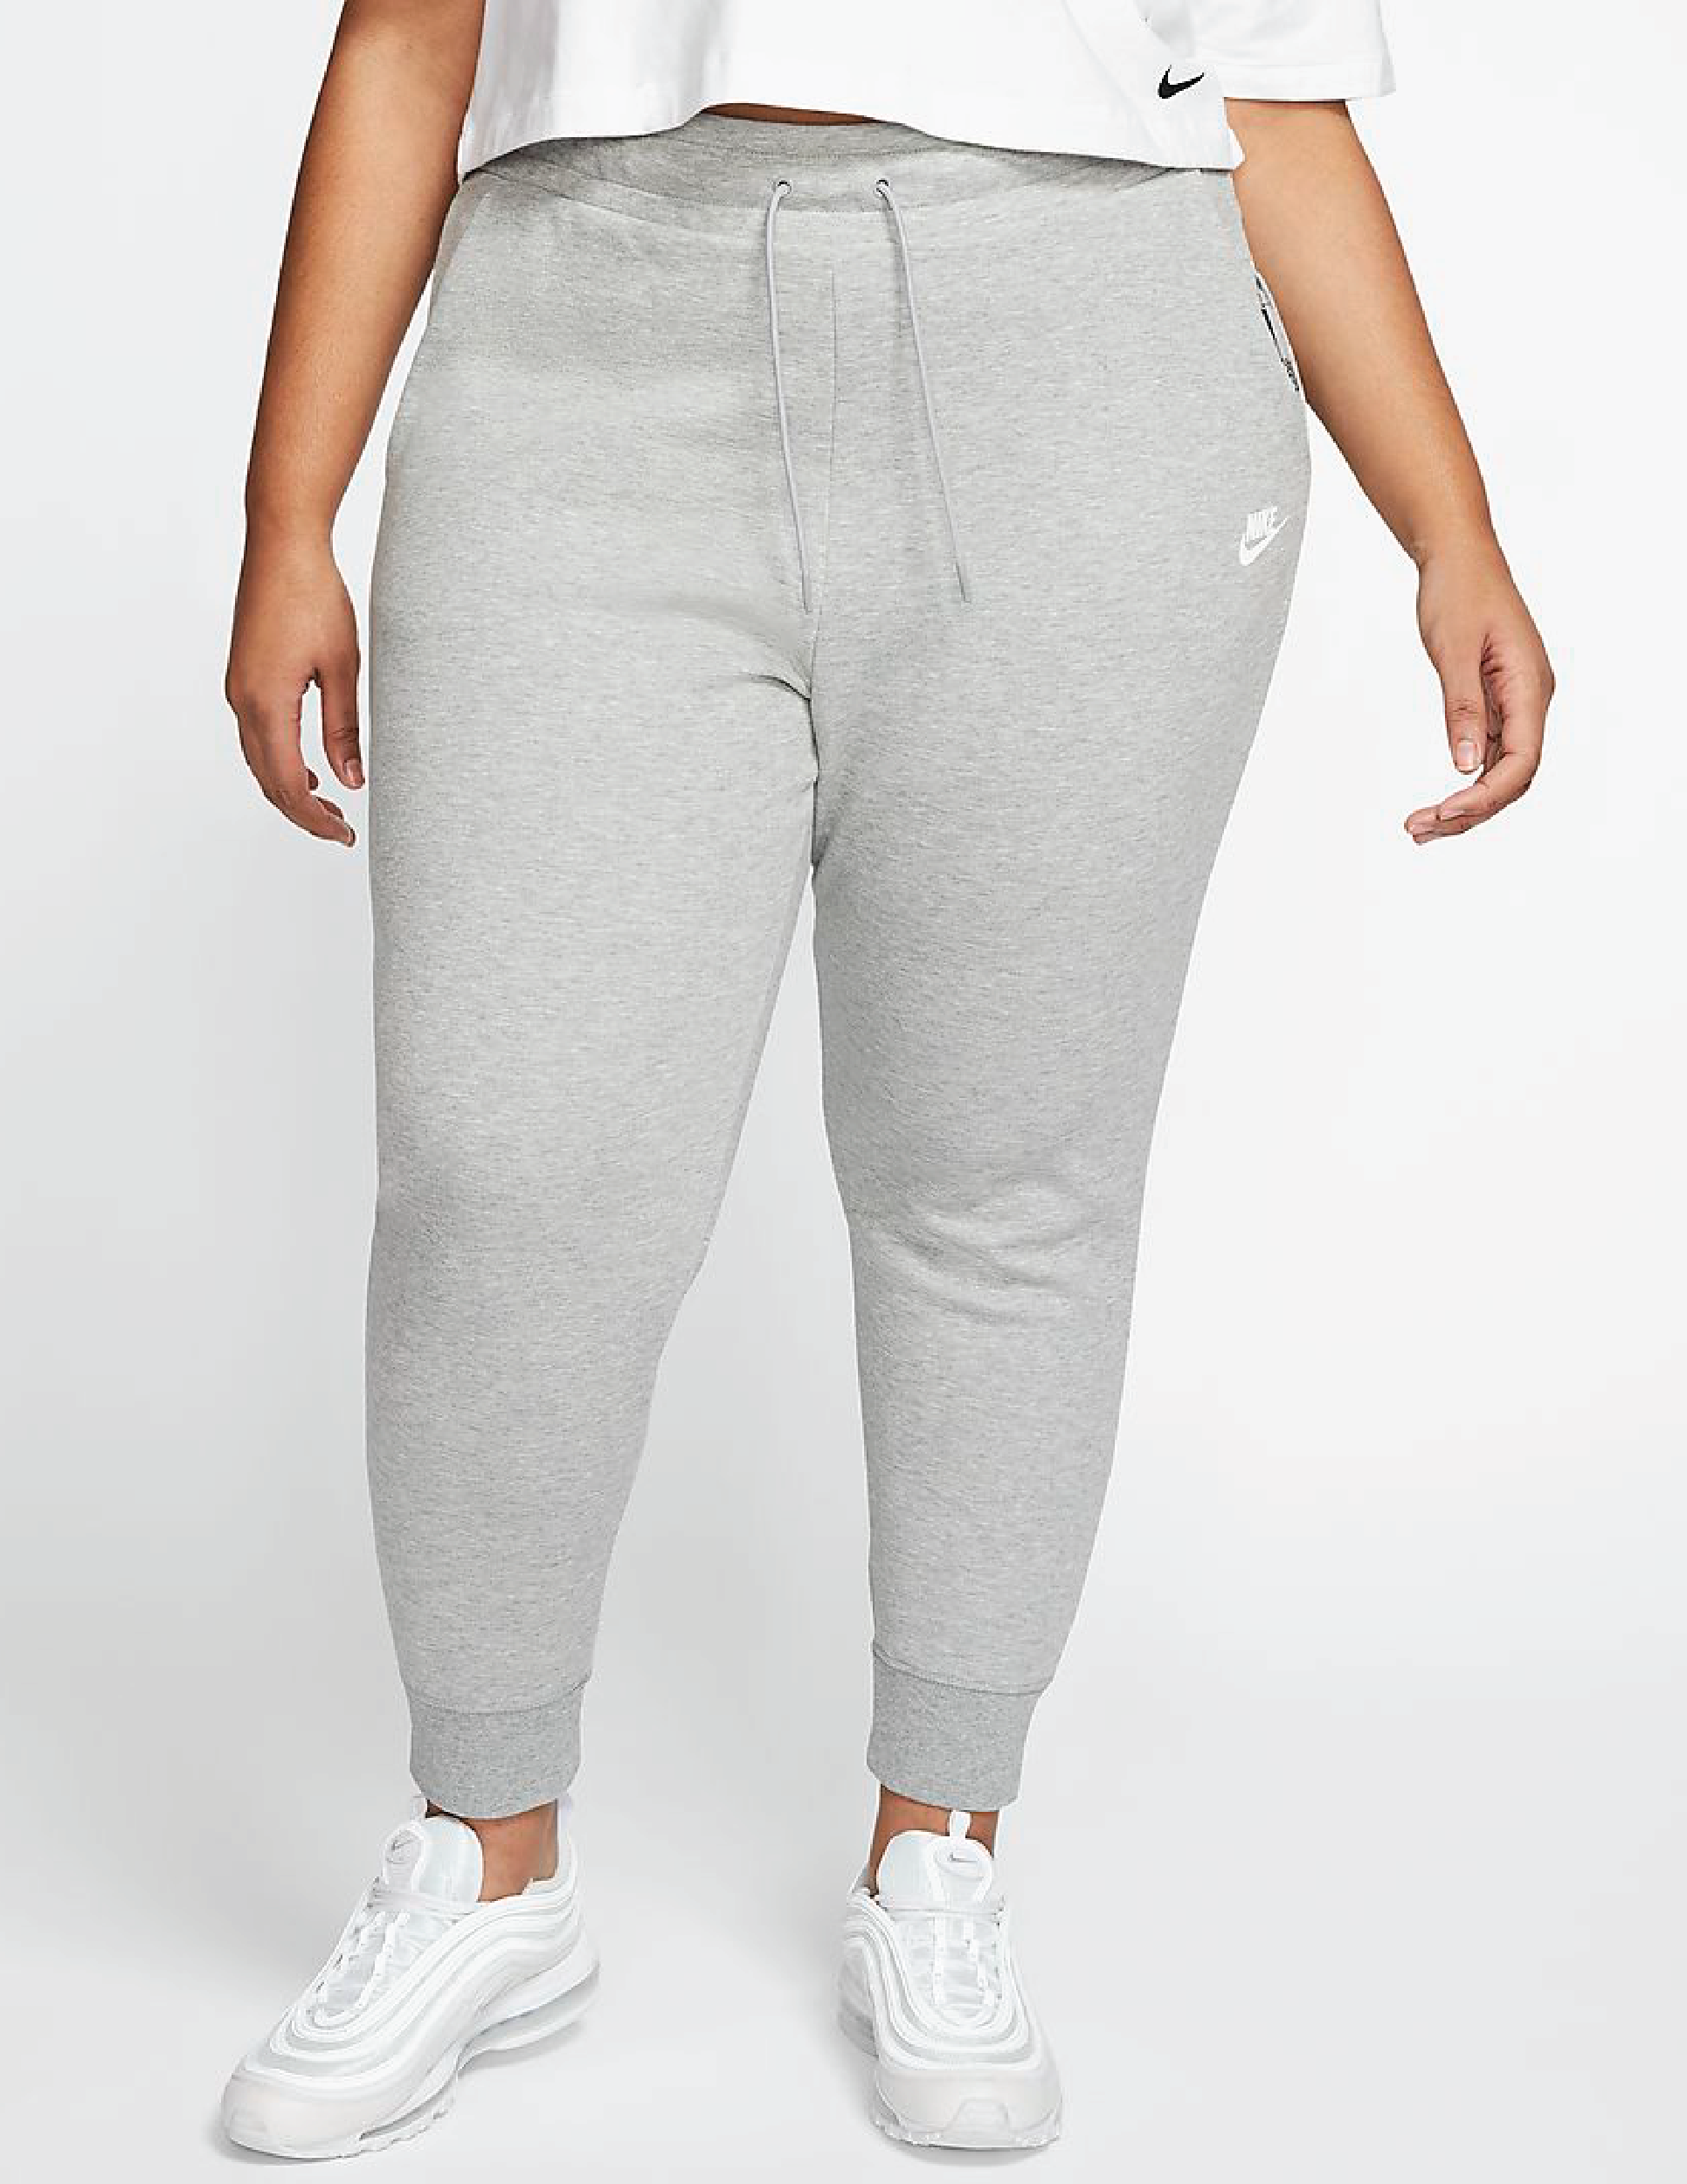 A model wearing the drawstring pants with ribbed cuffs